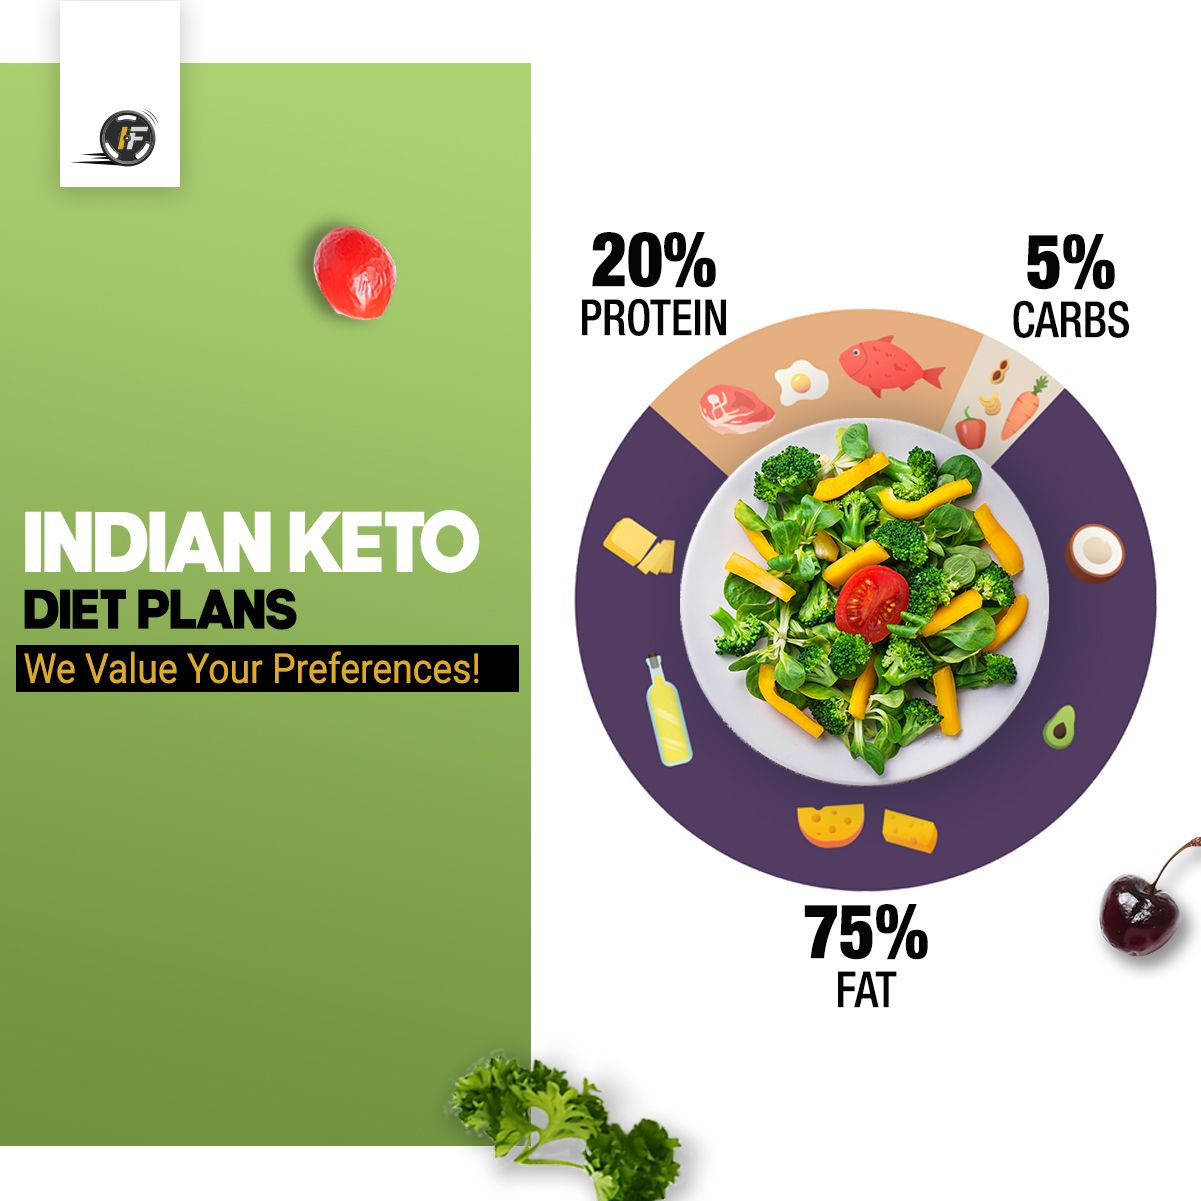 Indian Keto Diet Plans Custom Meal Plans Keto Diet Plan Keto Diet